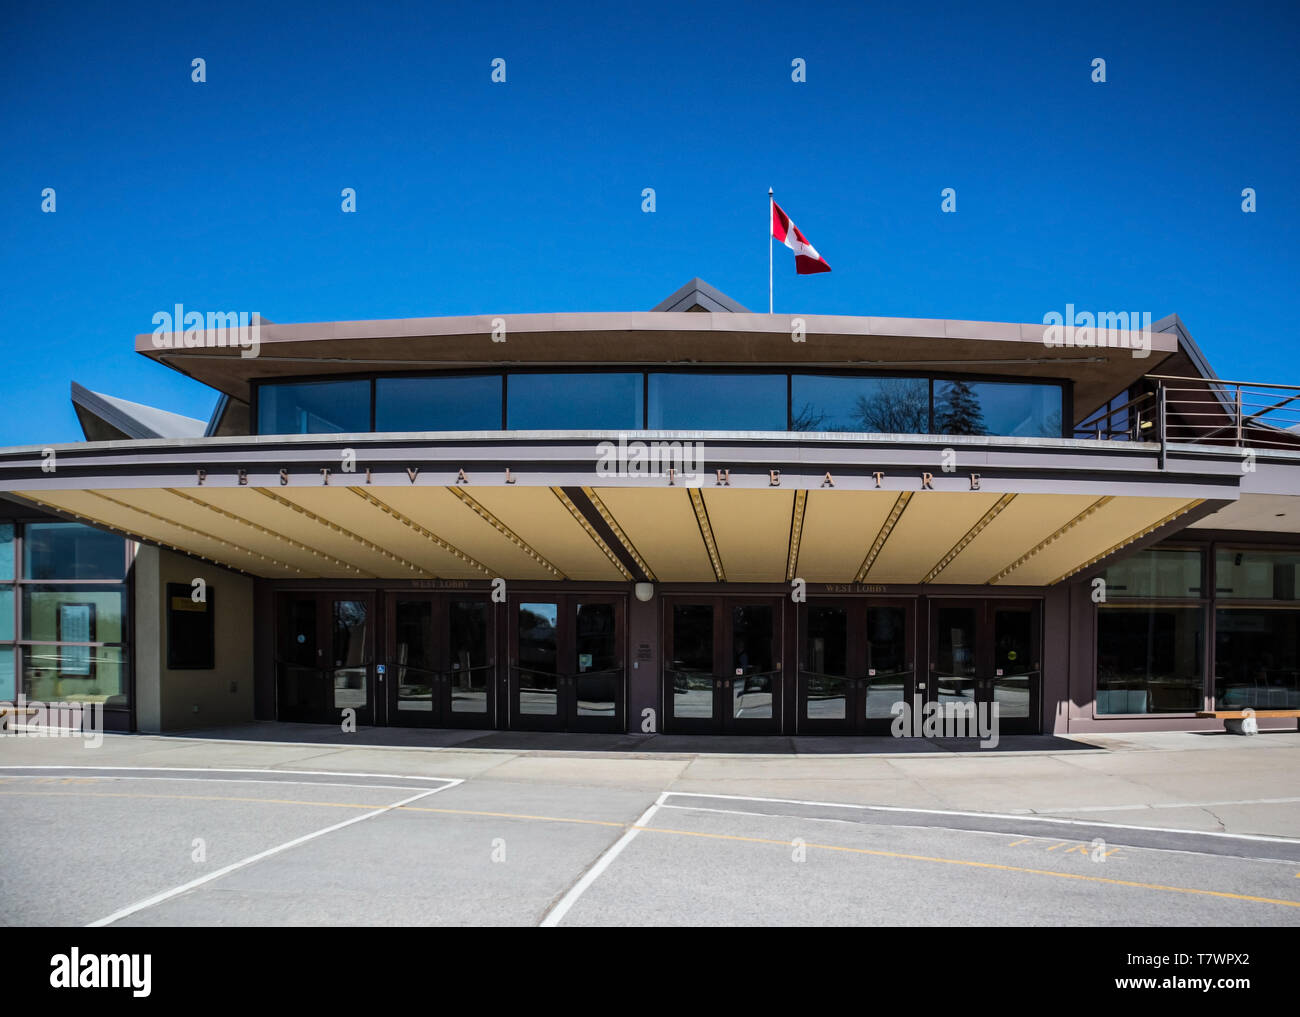 The entrance at Festival Theatre in Stratford, Ontario, Canada. - Stock Image